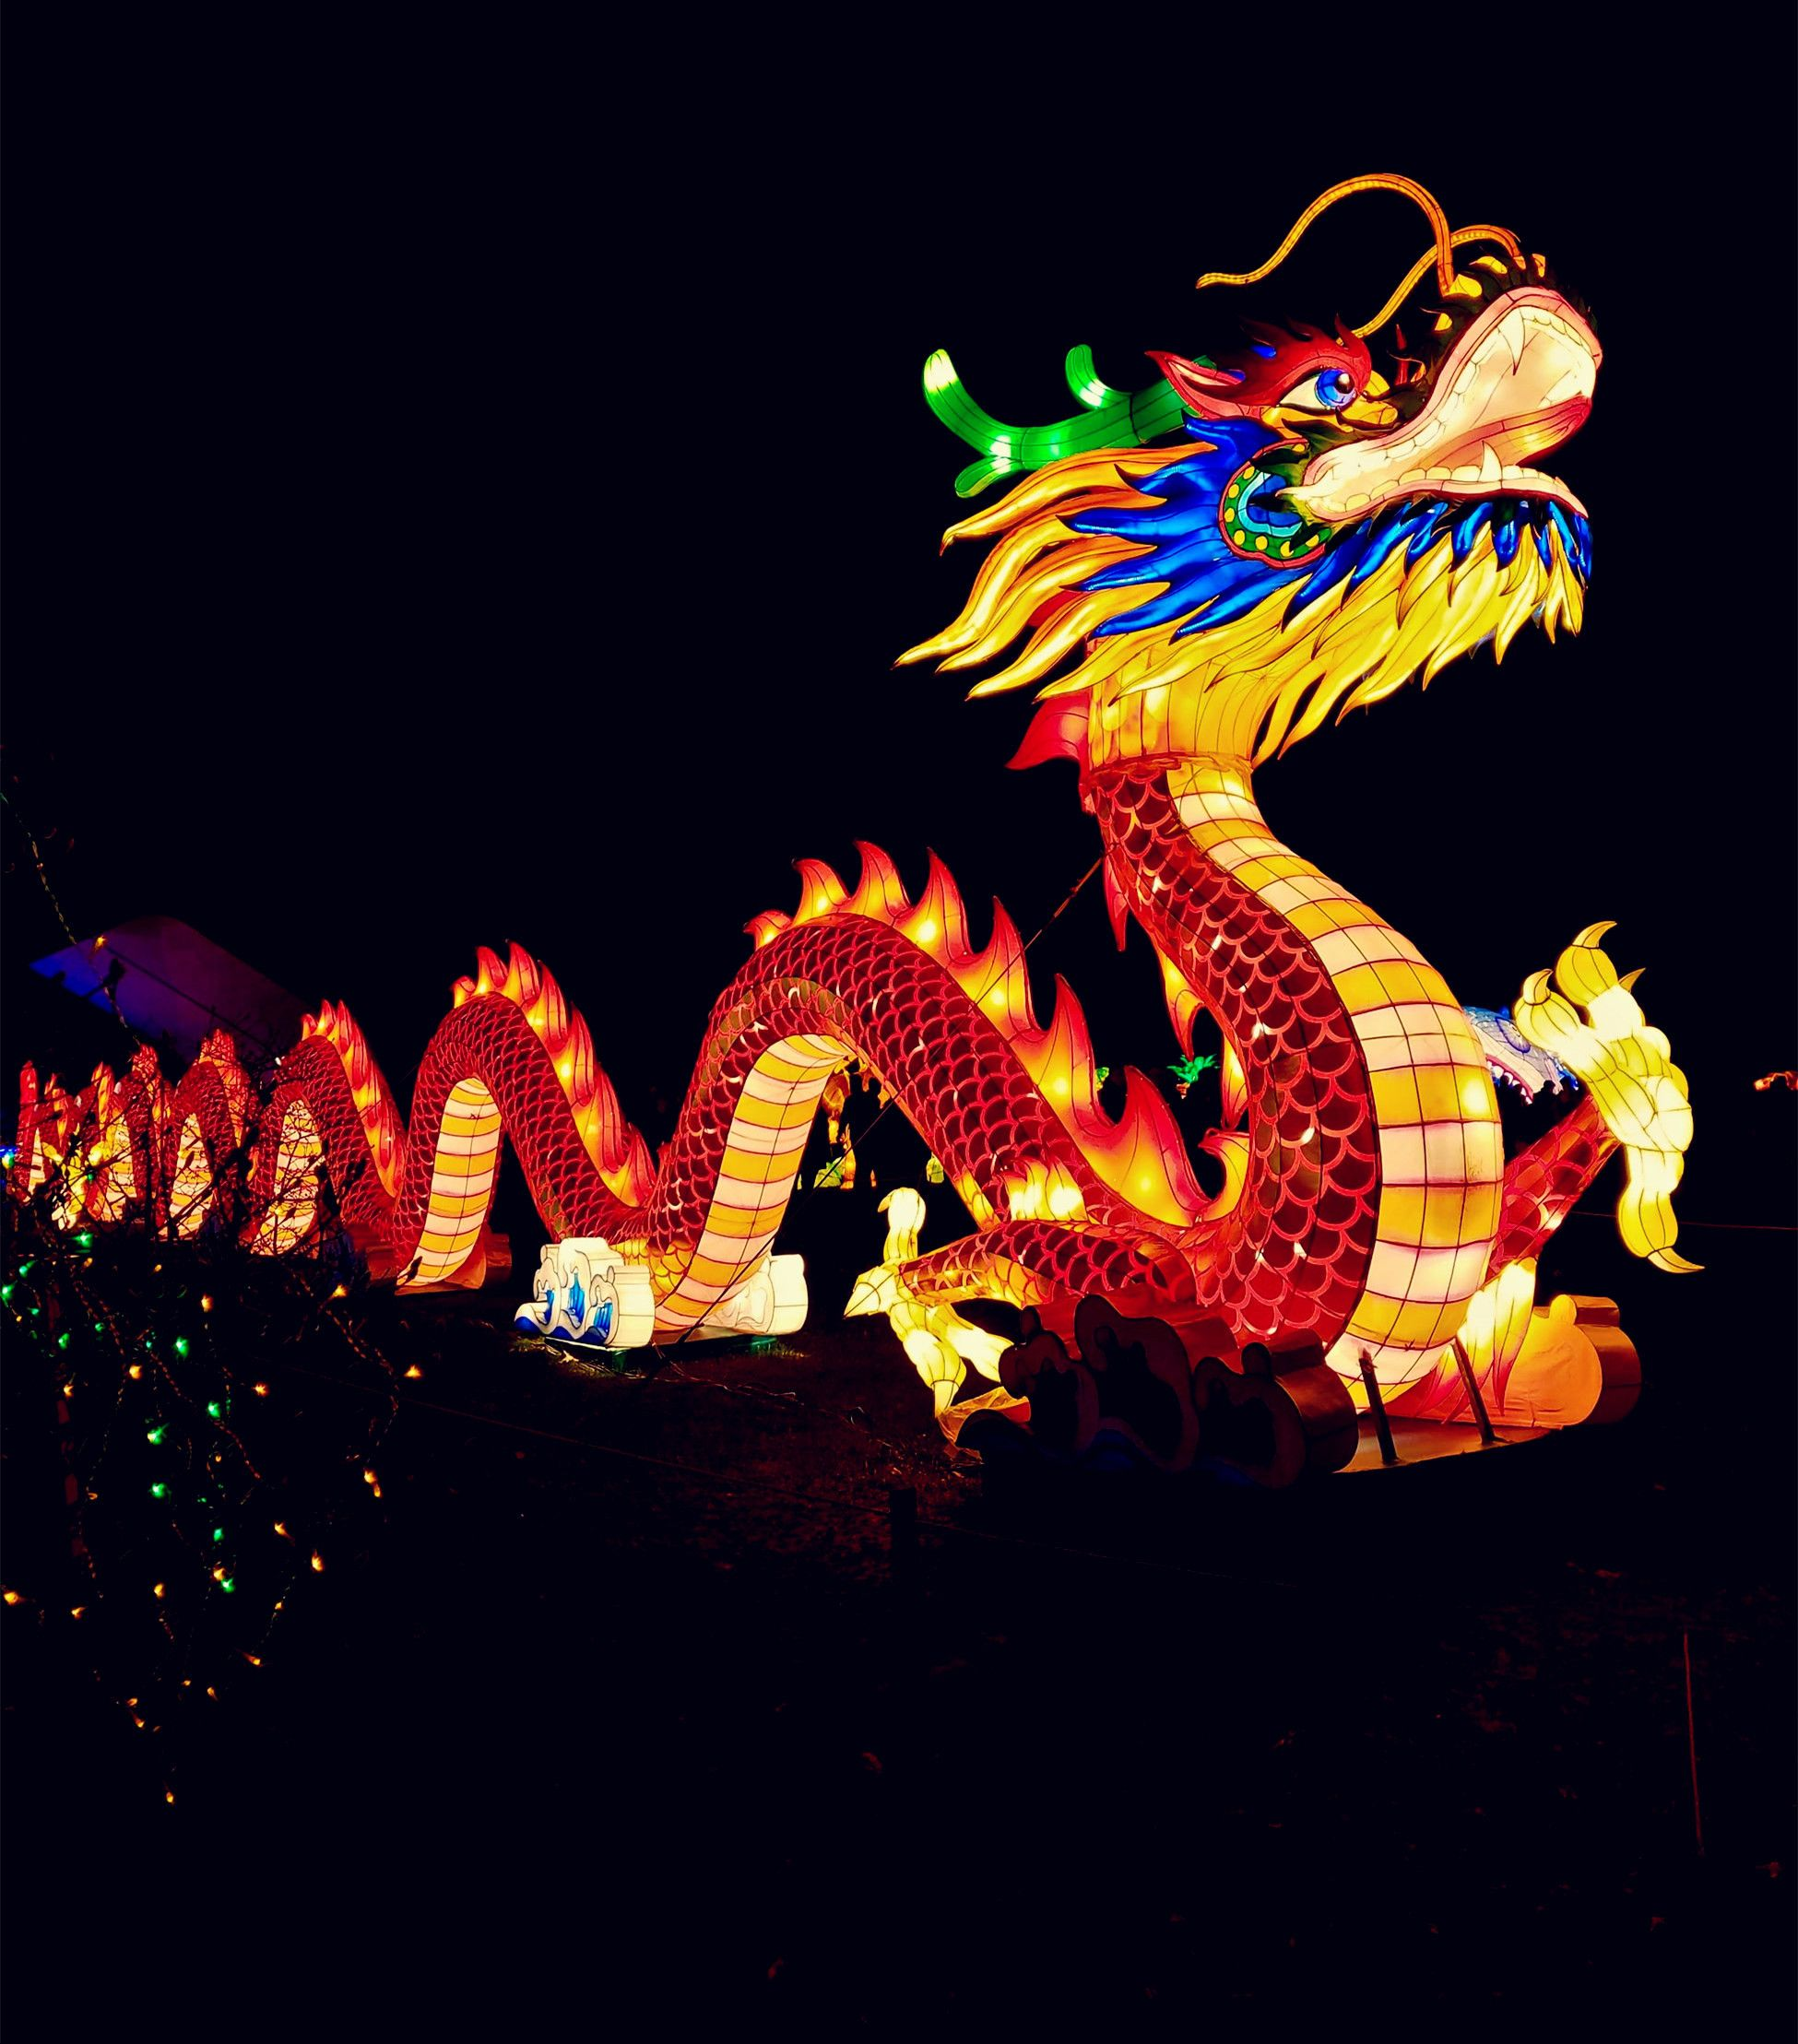 chinese new year dragon dance cchatty chinese new year dragon dance cchatty